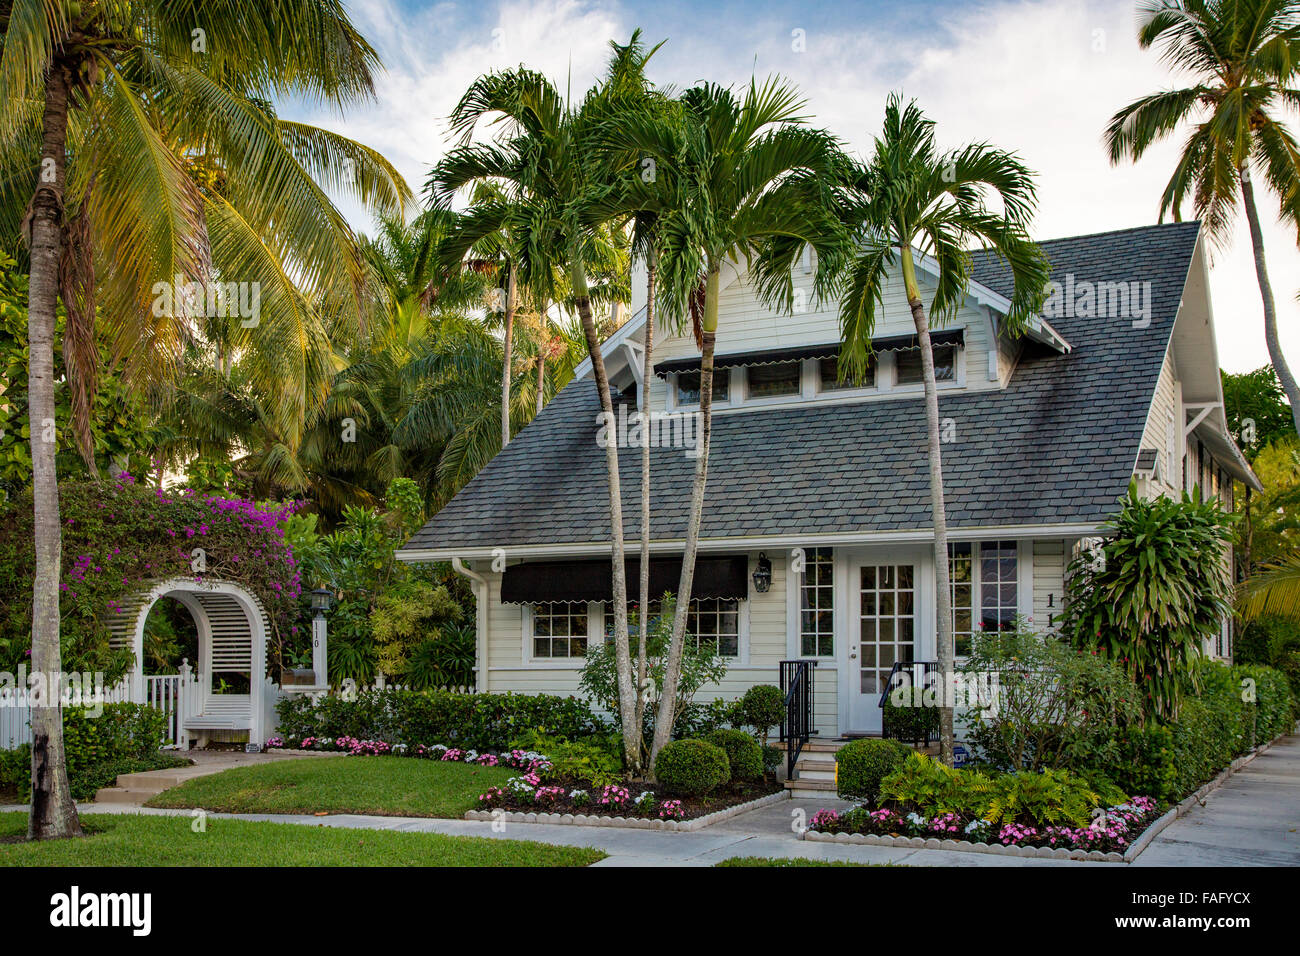 The dupont family cottage naples florida usa stock for Family cottages